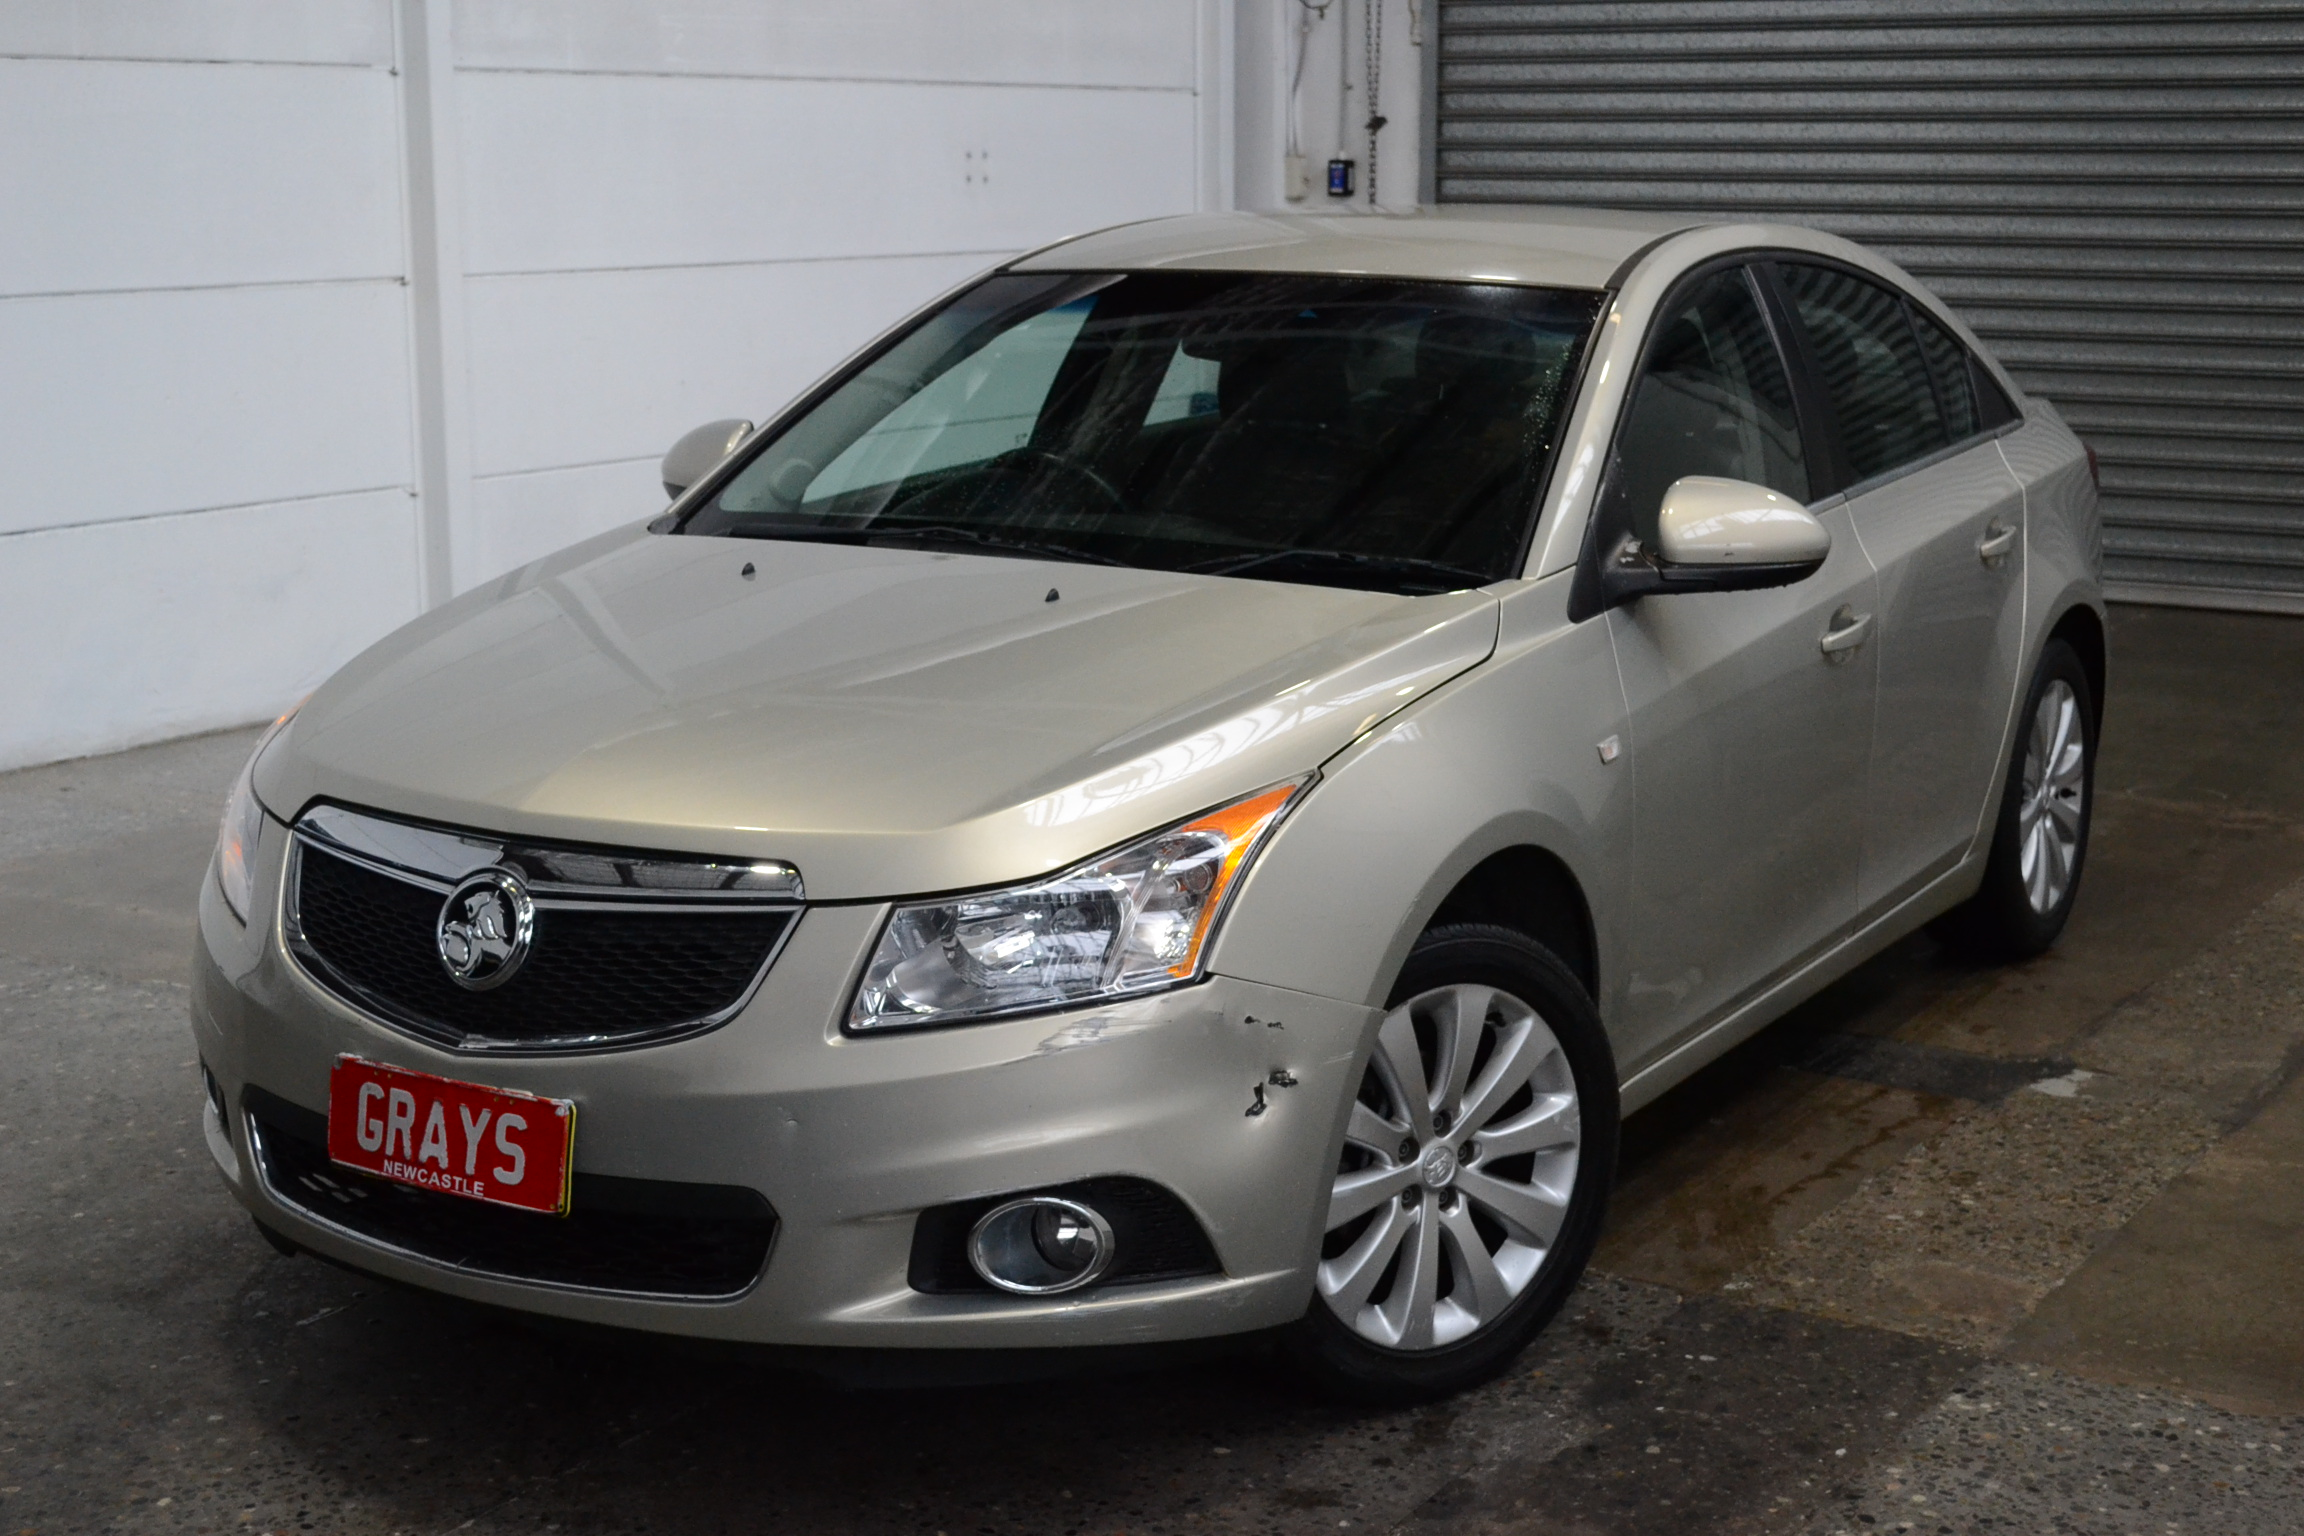 2012 Holden Cruze CDX JH Automatic Sedan